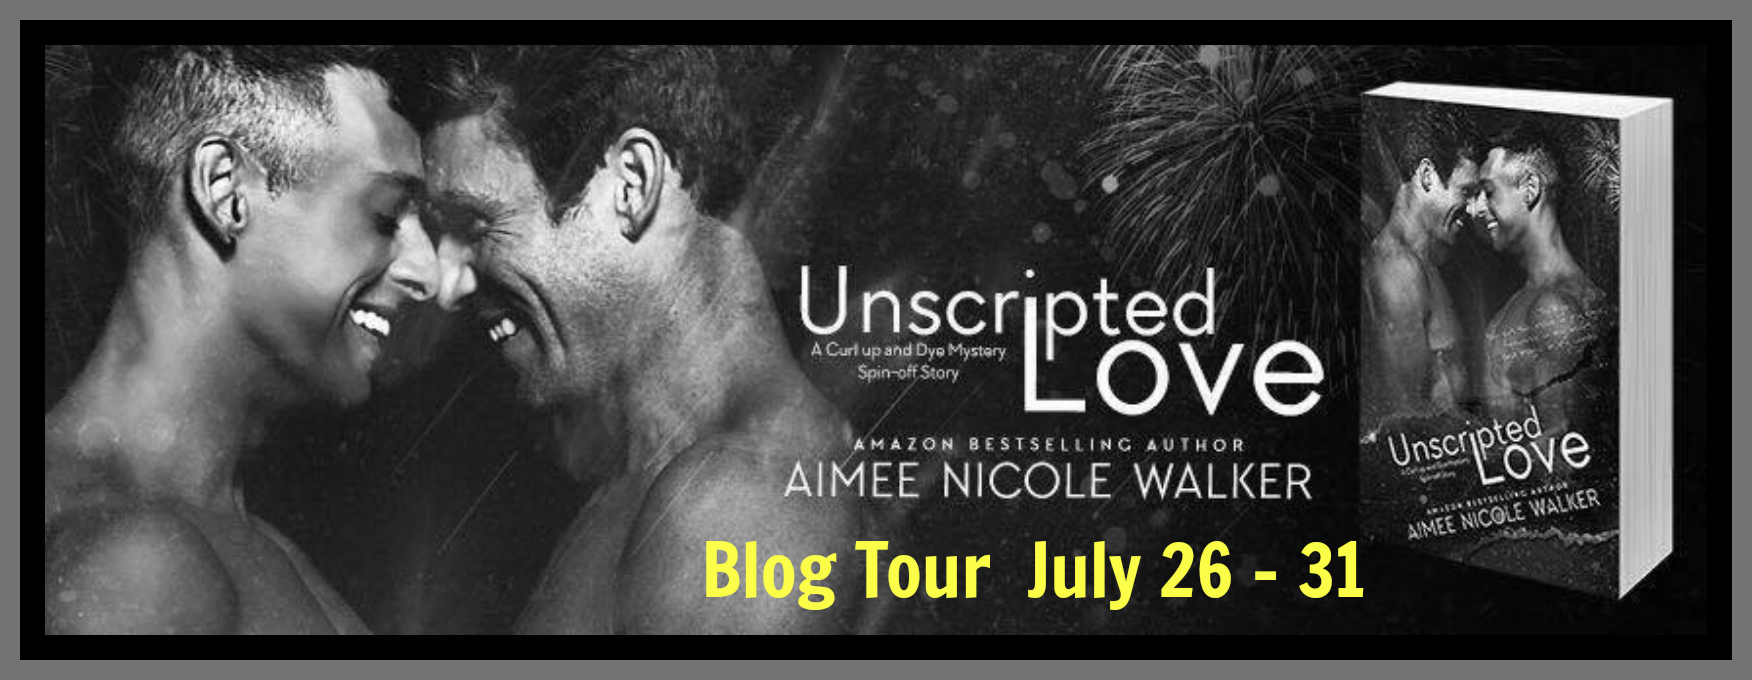 Get Unscripted Love by Aimee Nicole Walker on Amazon & Kindle Unlimited